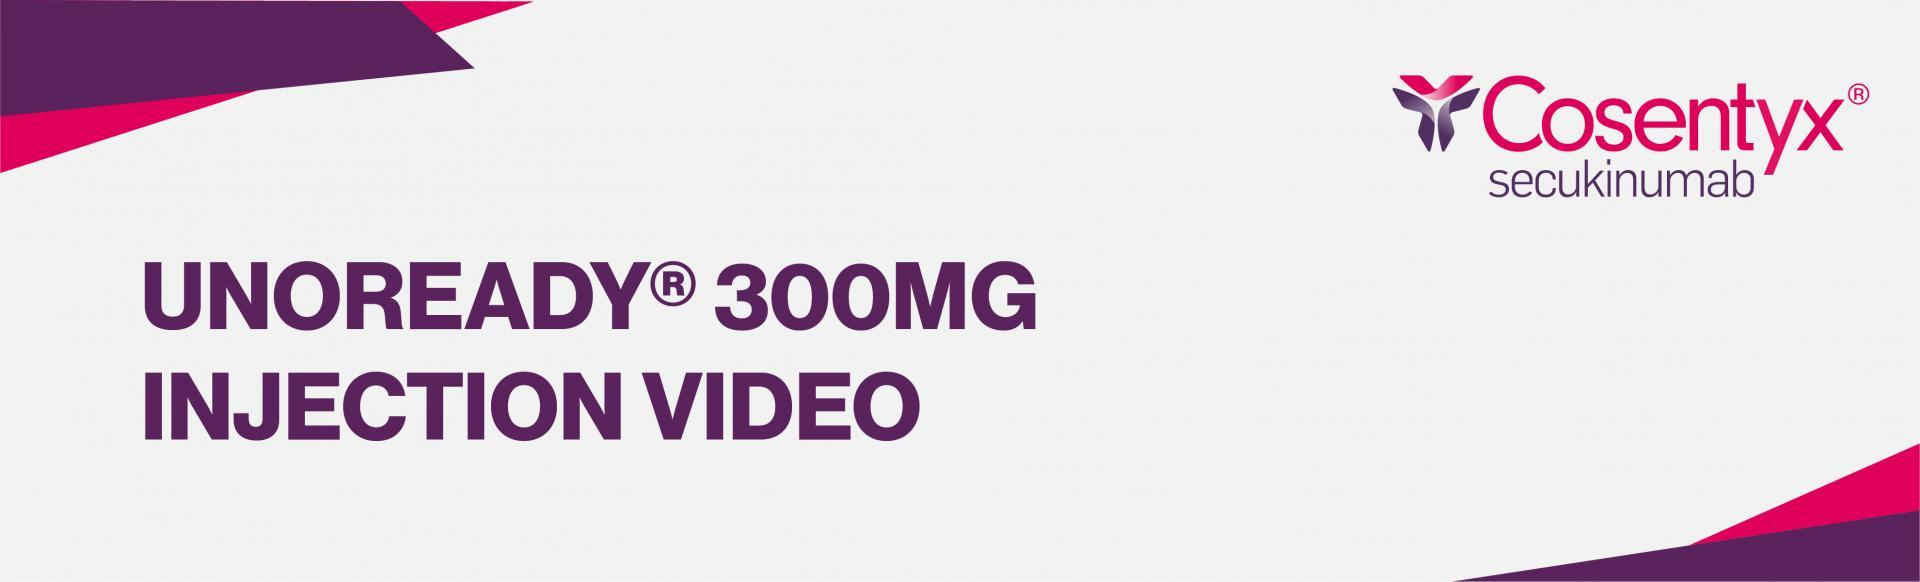 Top banner: unoready 300g injection video